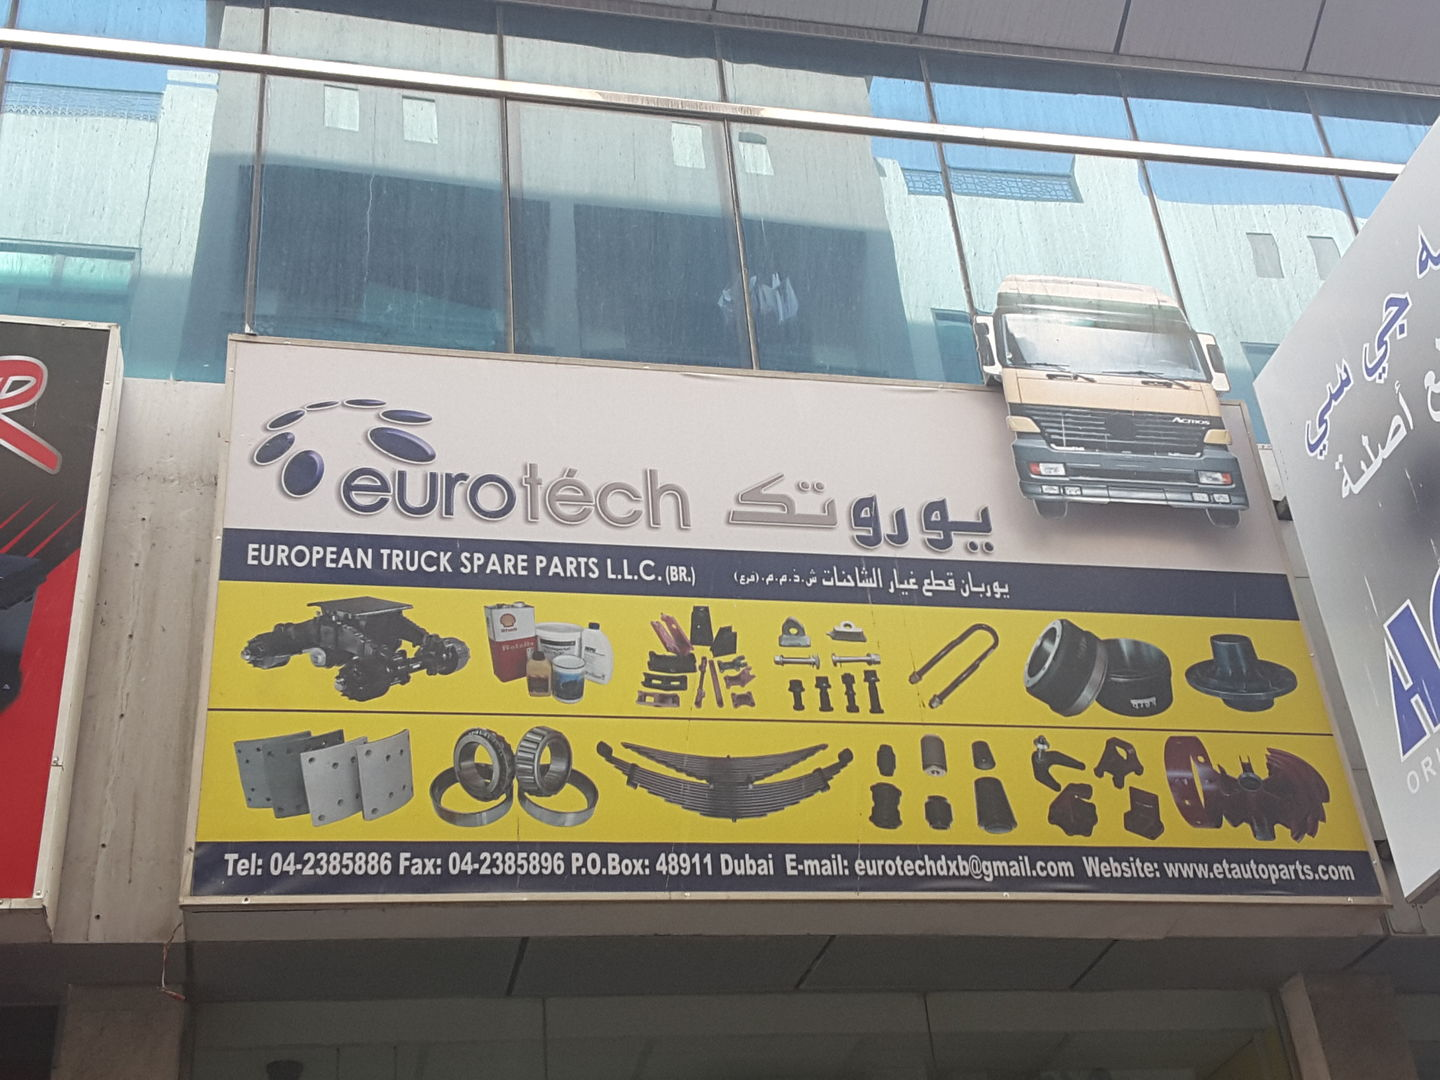 Eurotech European Truck Spare Parts, (Distributors